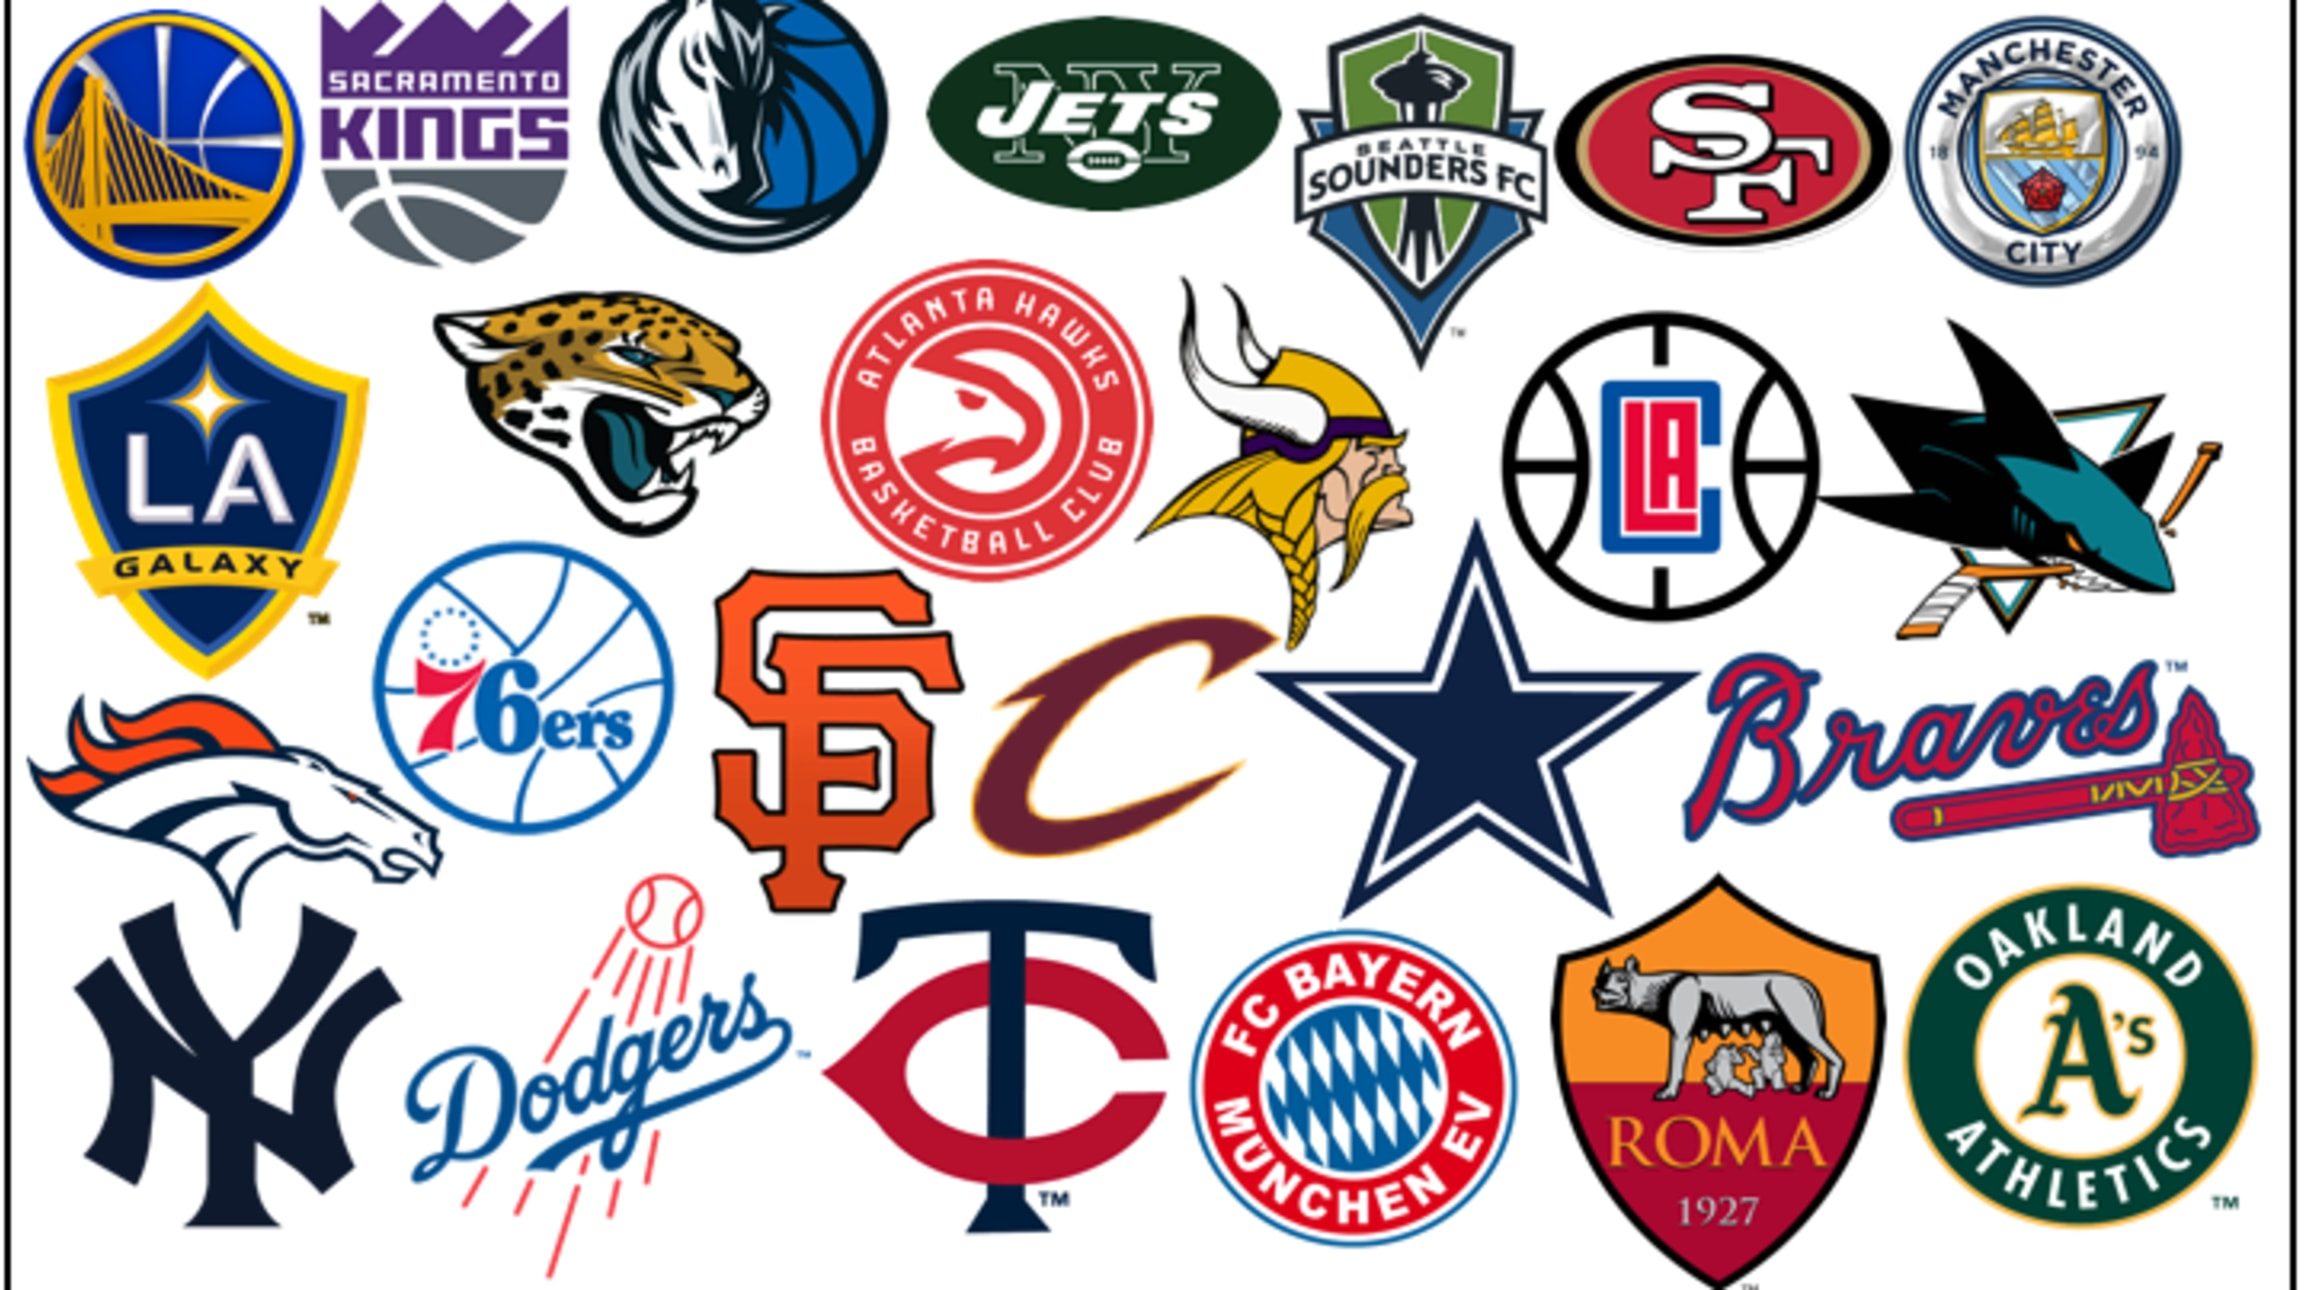 SportTechie25 – Ranking The 25 Most Tech-Savvy Sports Teams